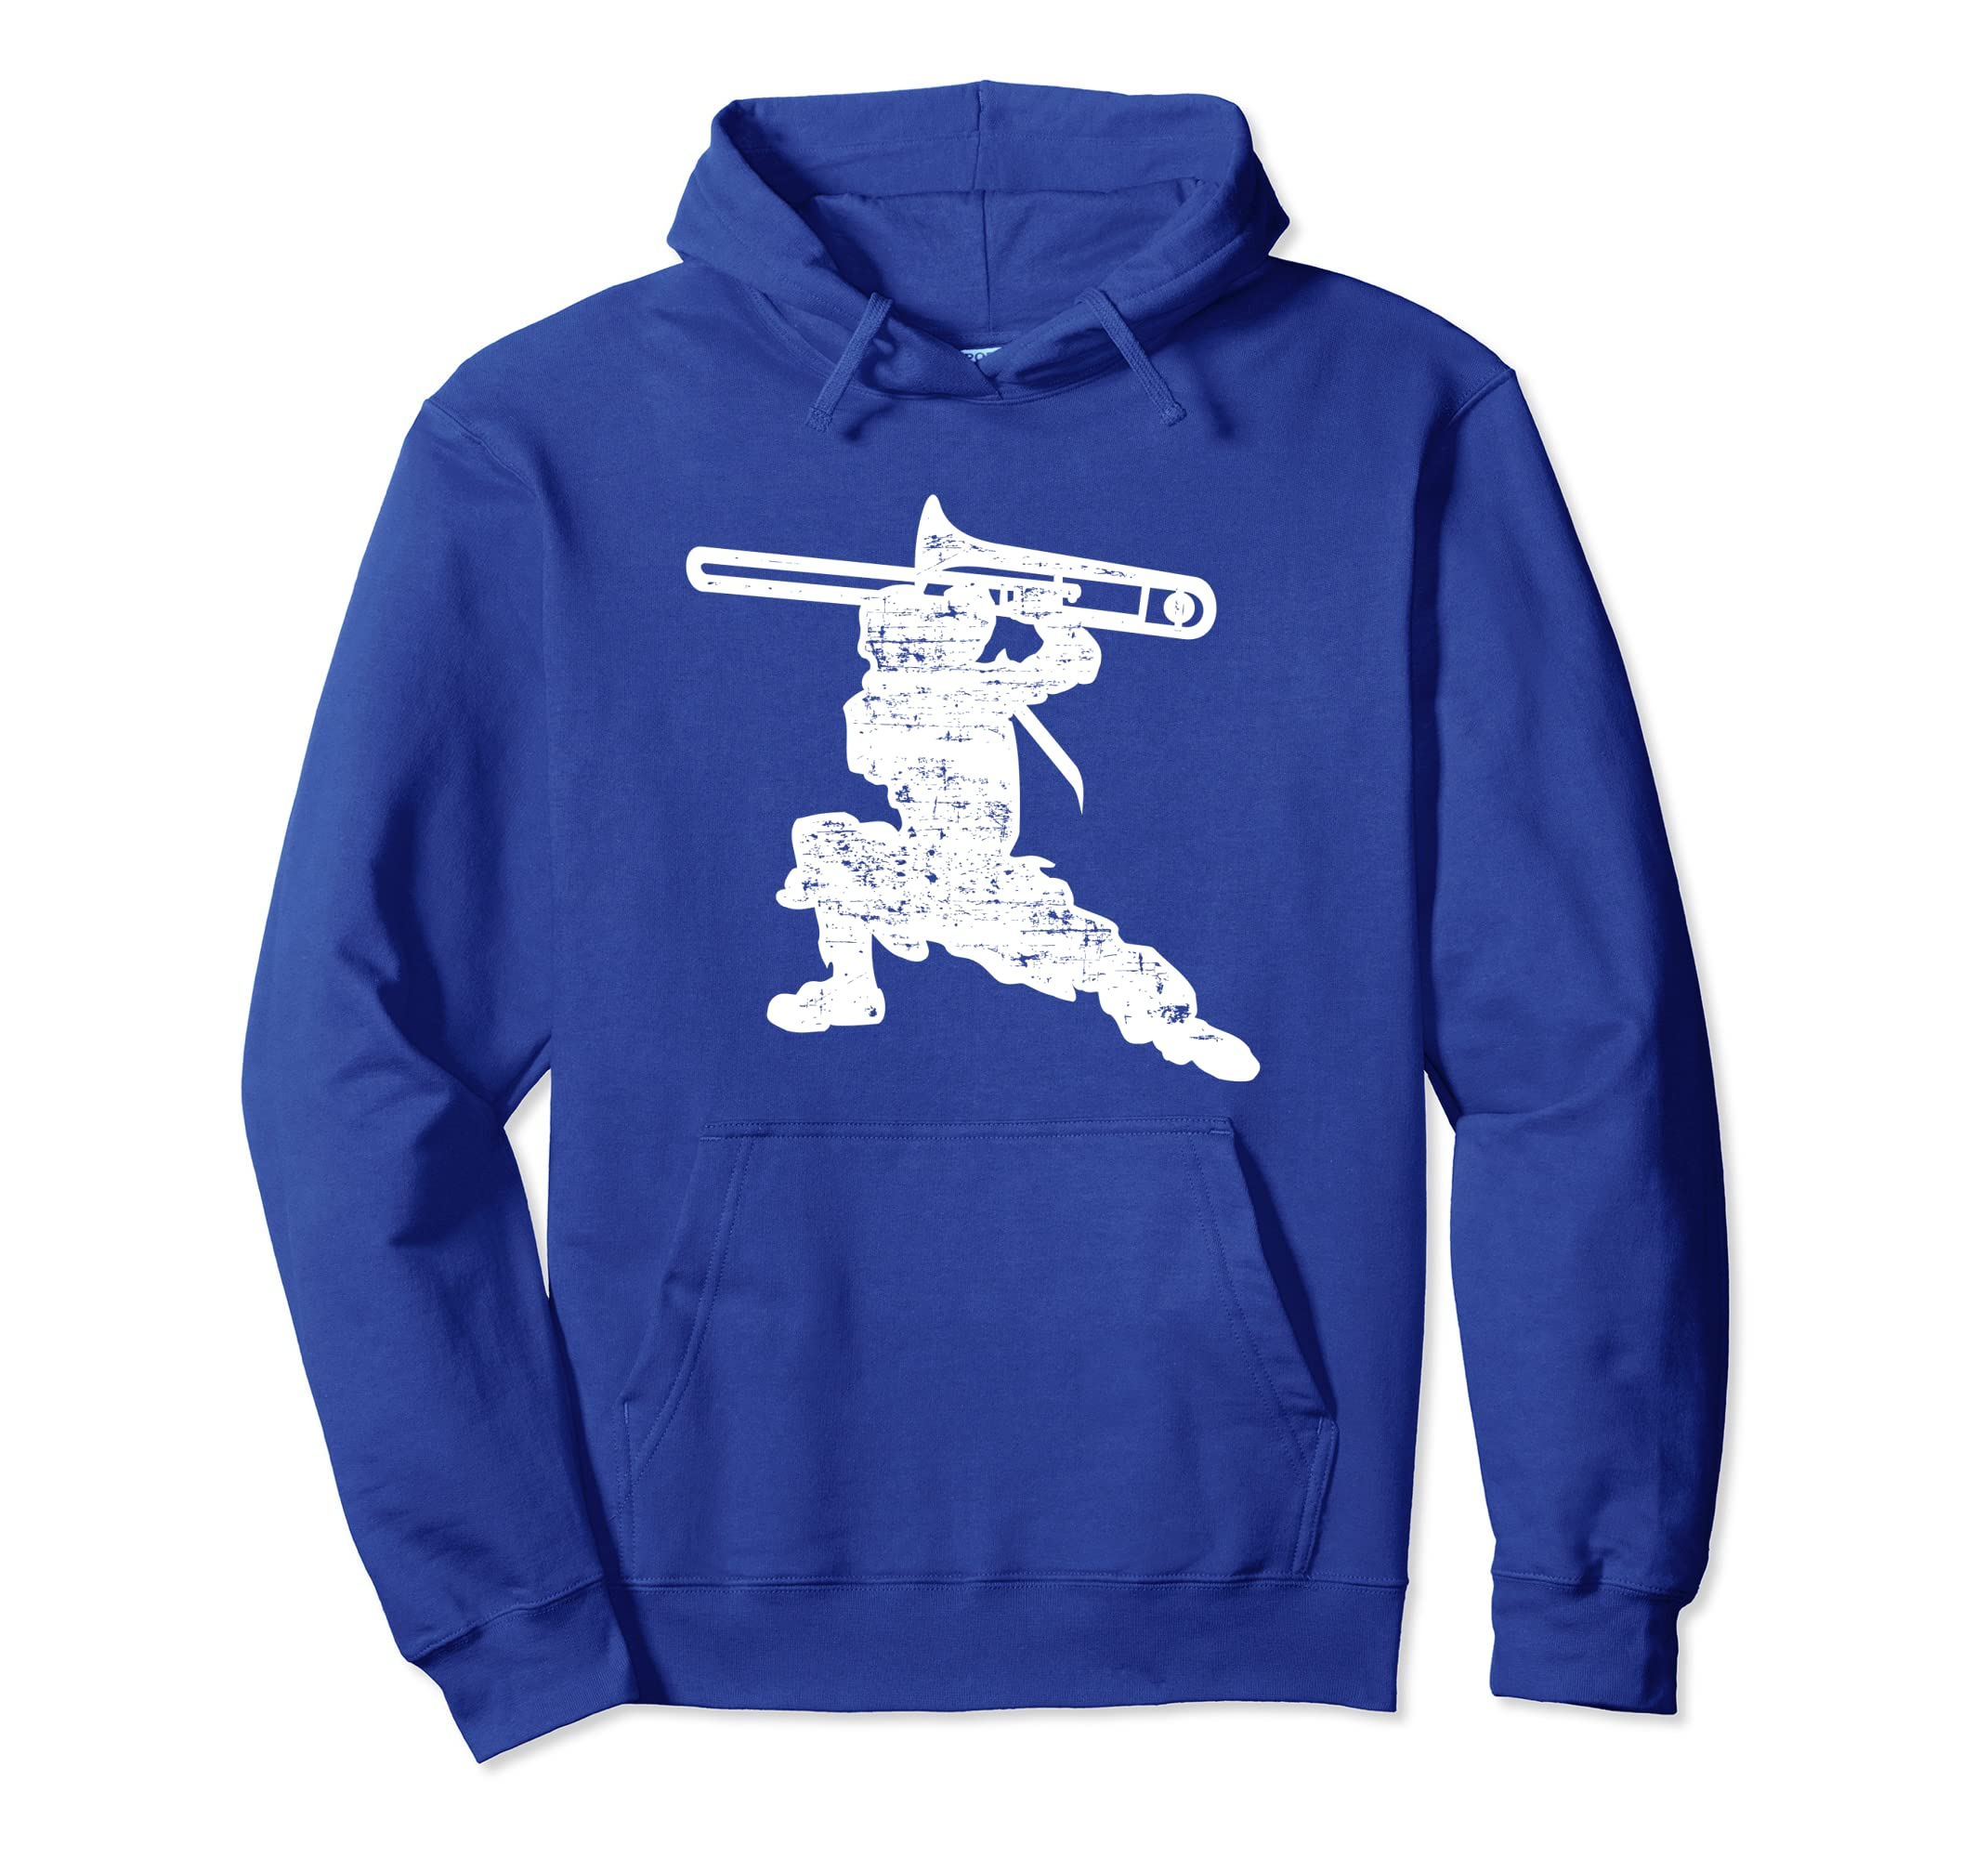 c44a40e1106 Amazon.com  Trombone Ninja Distressed Trombone Hoodie For Trombonist   Clothing